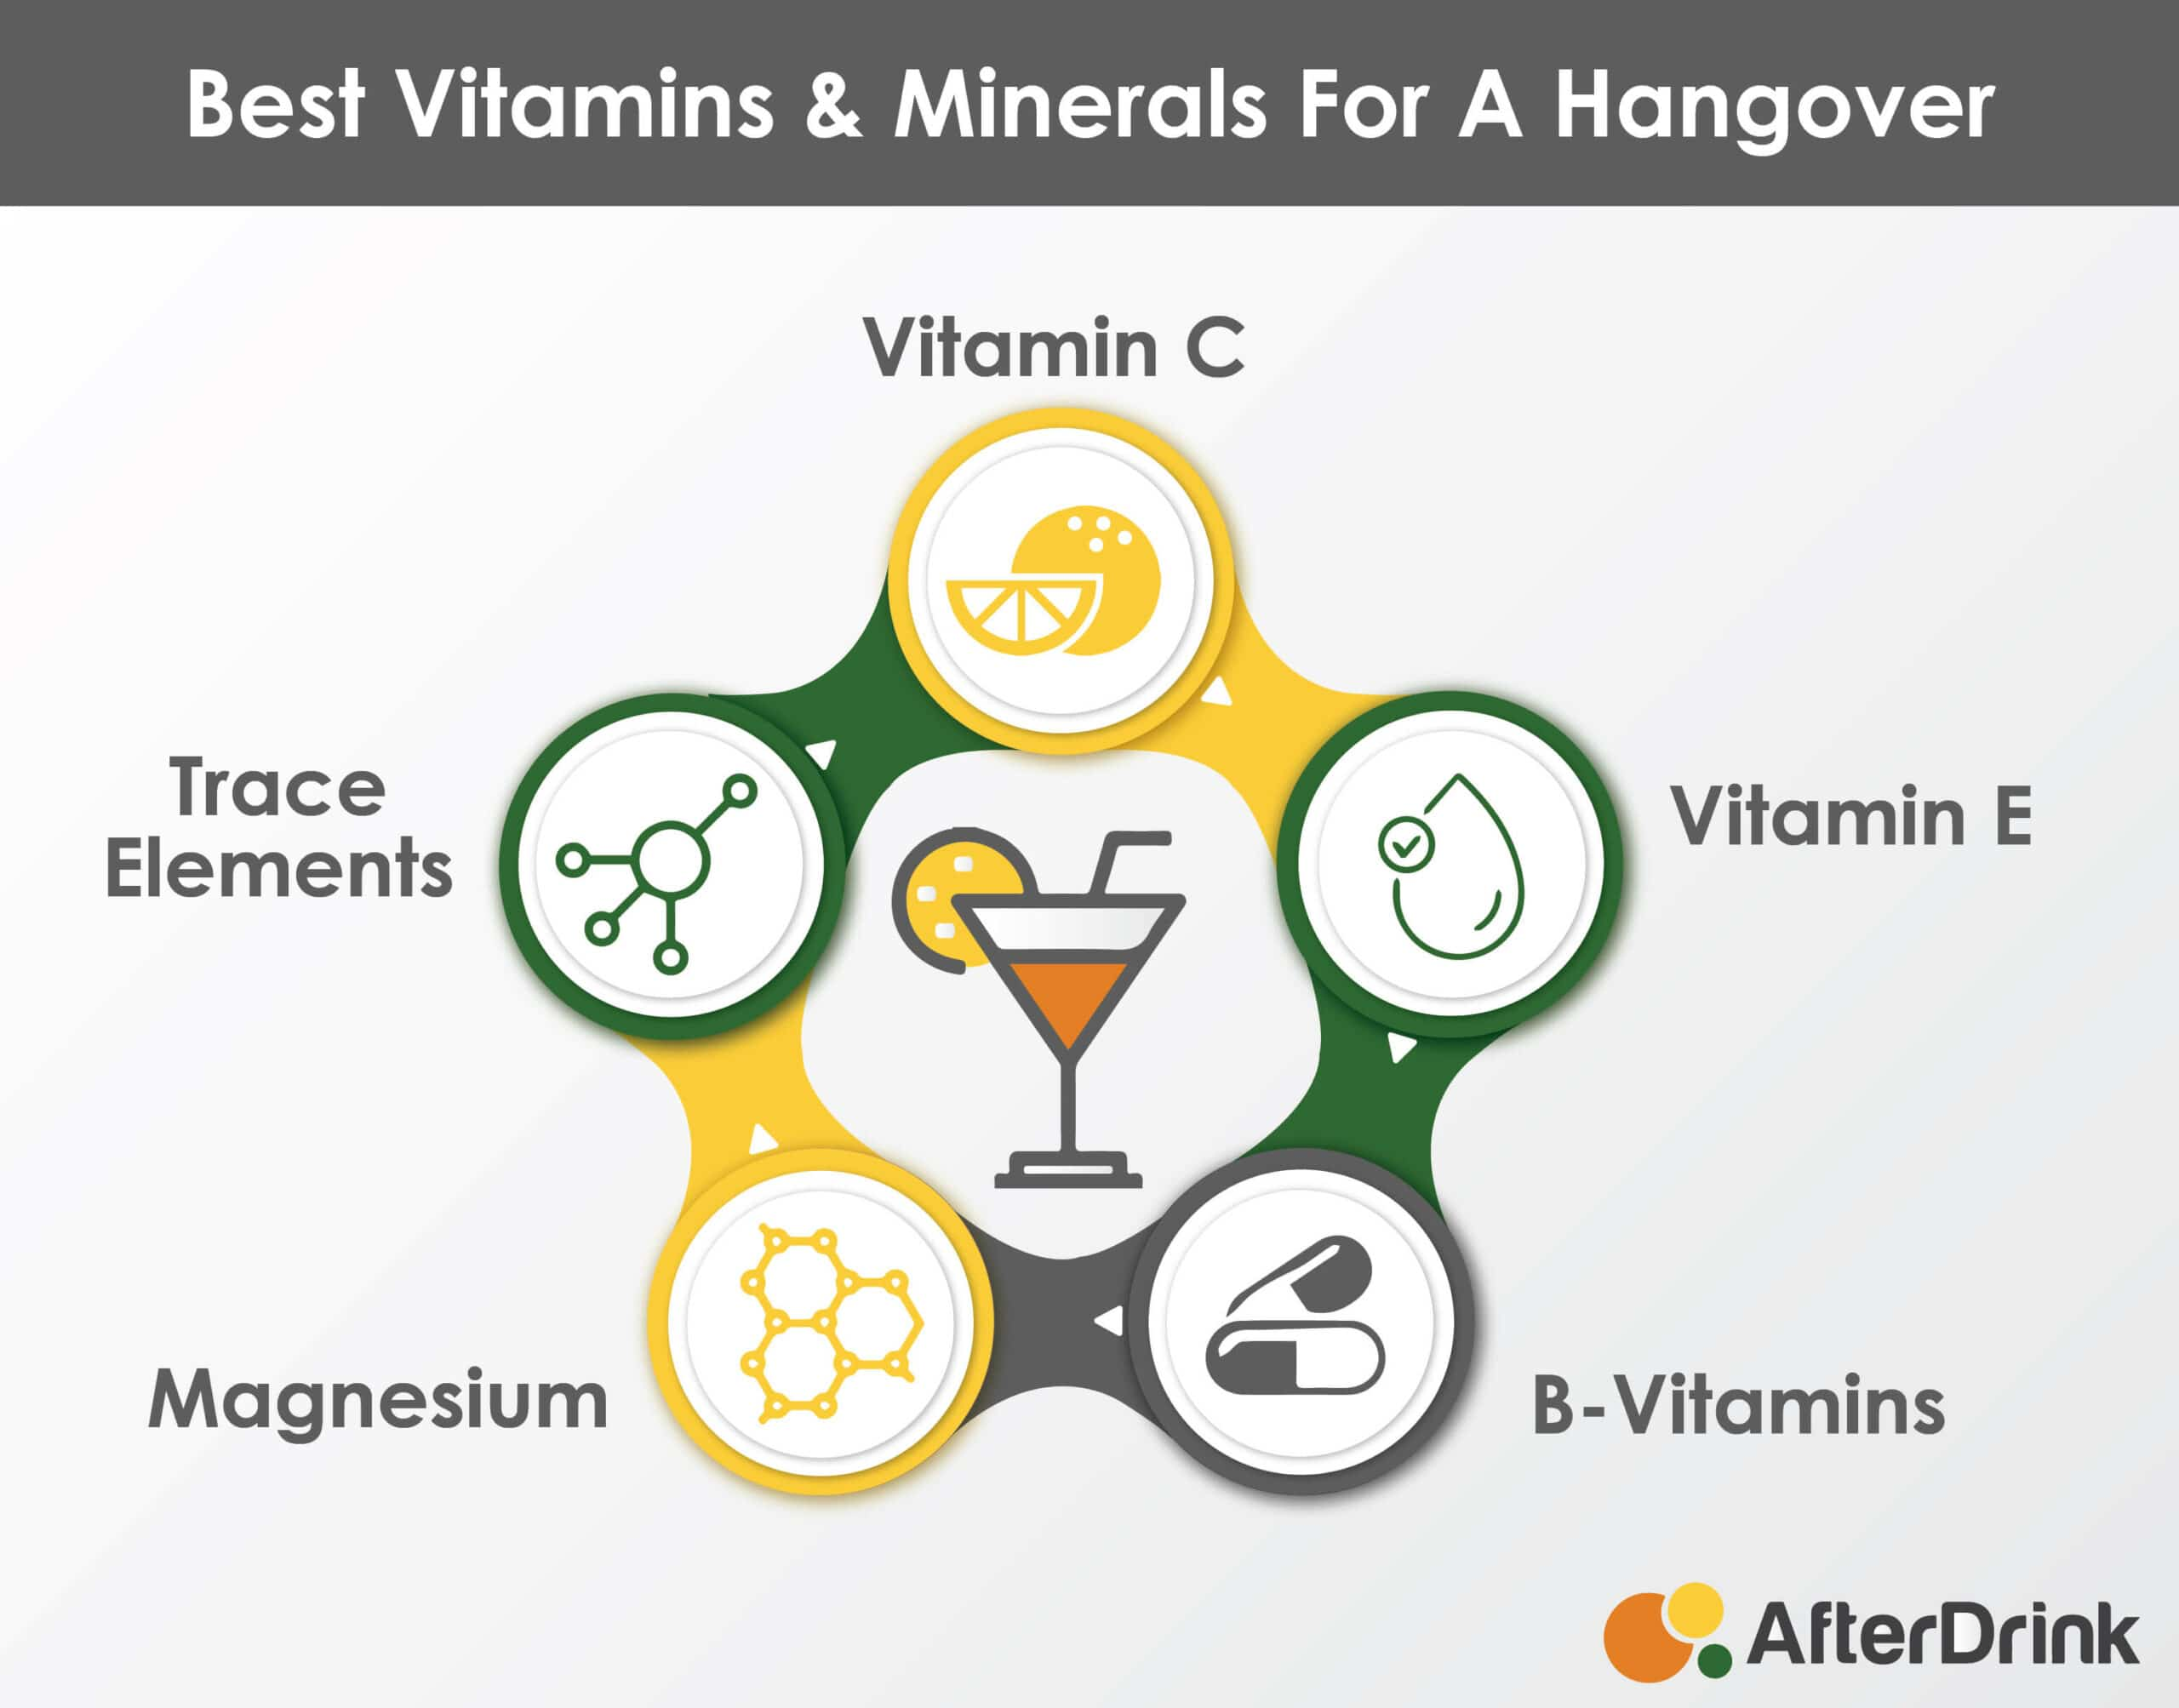 Best Vitamins For Hangover